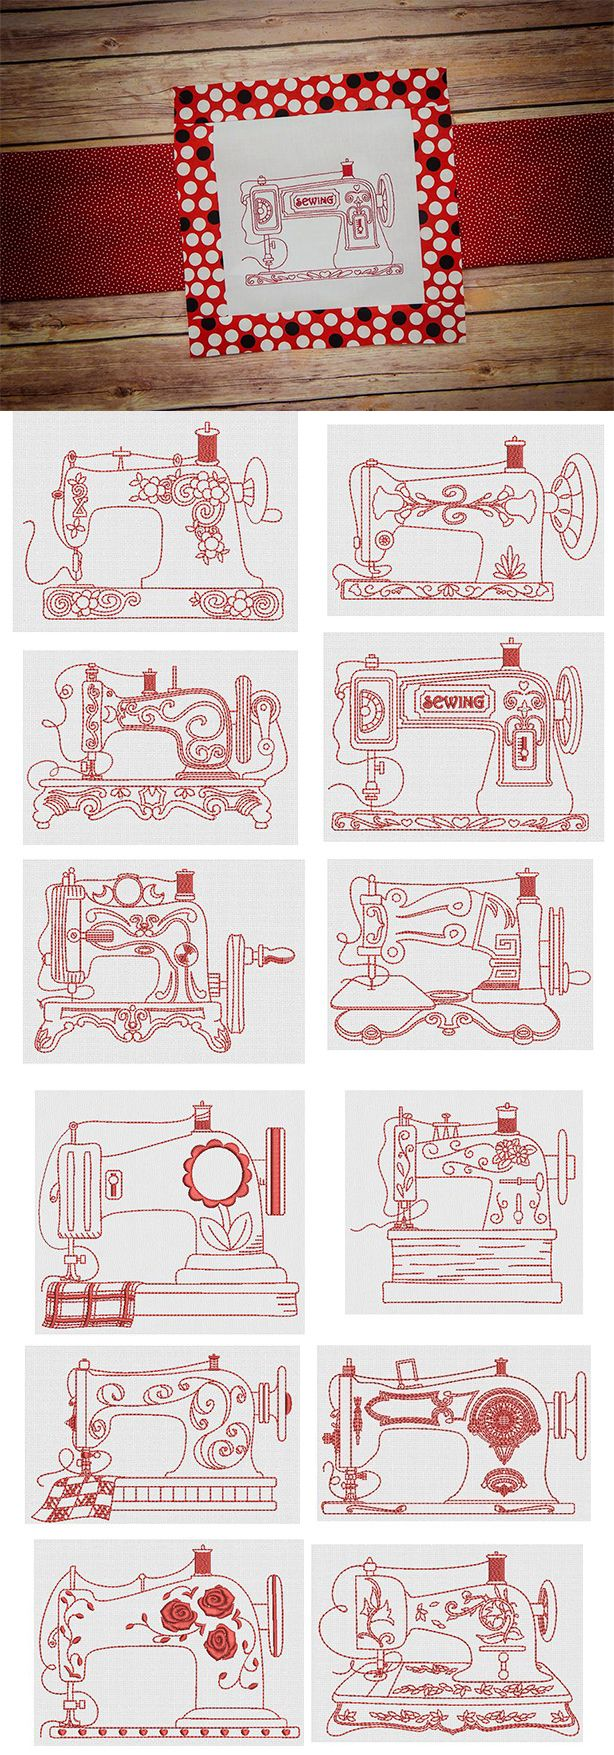 Vintage Sewing Machines Redwork design set is available for instant download atdesignsbyjuju.com